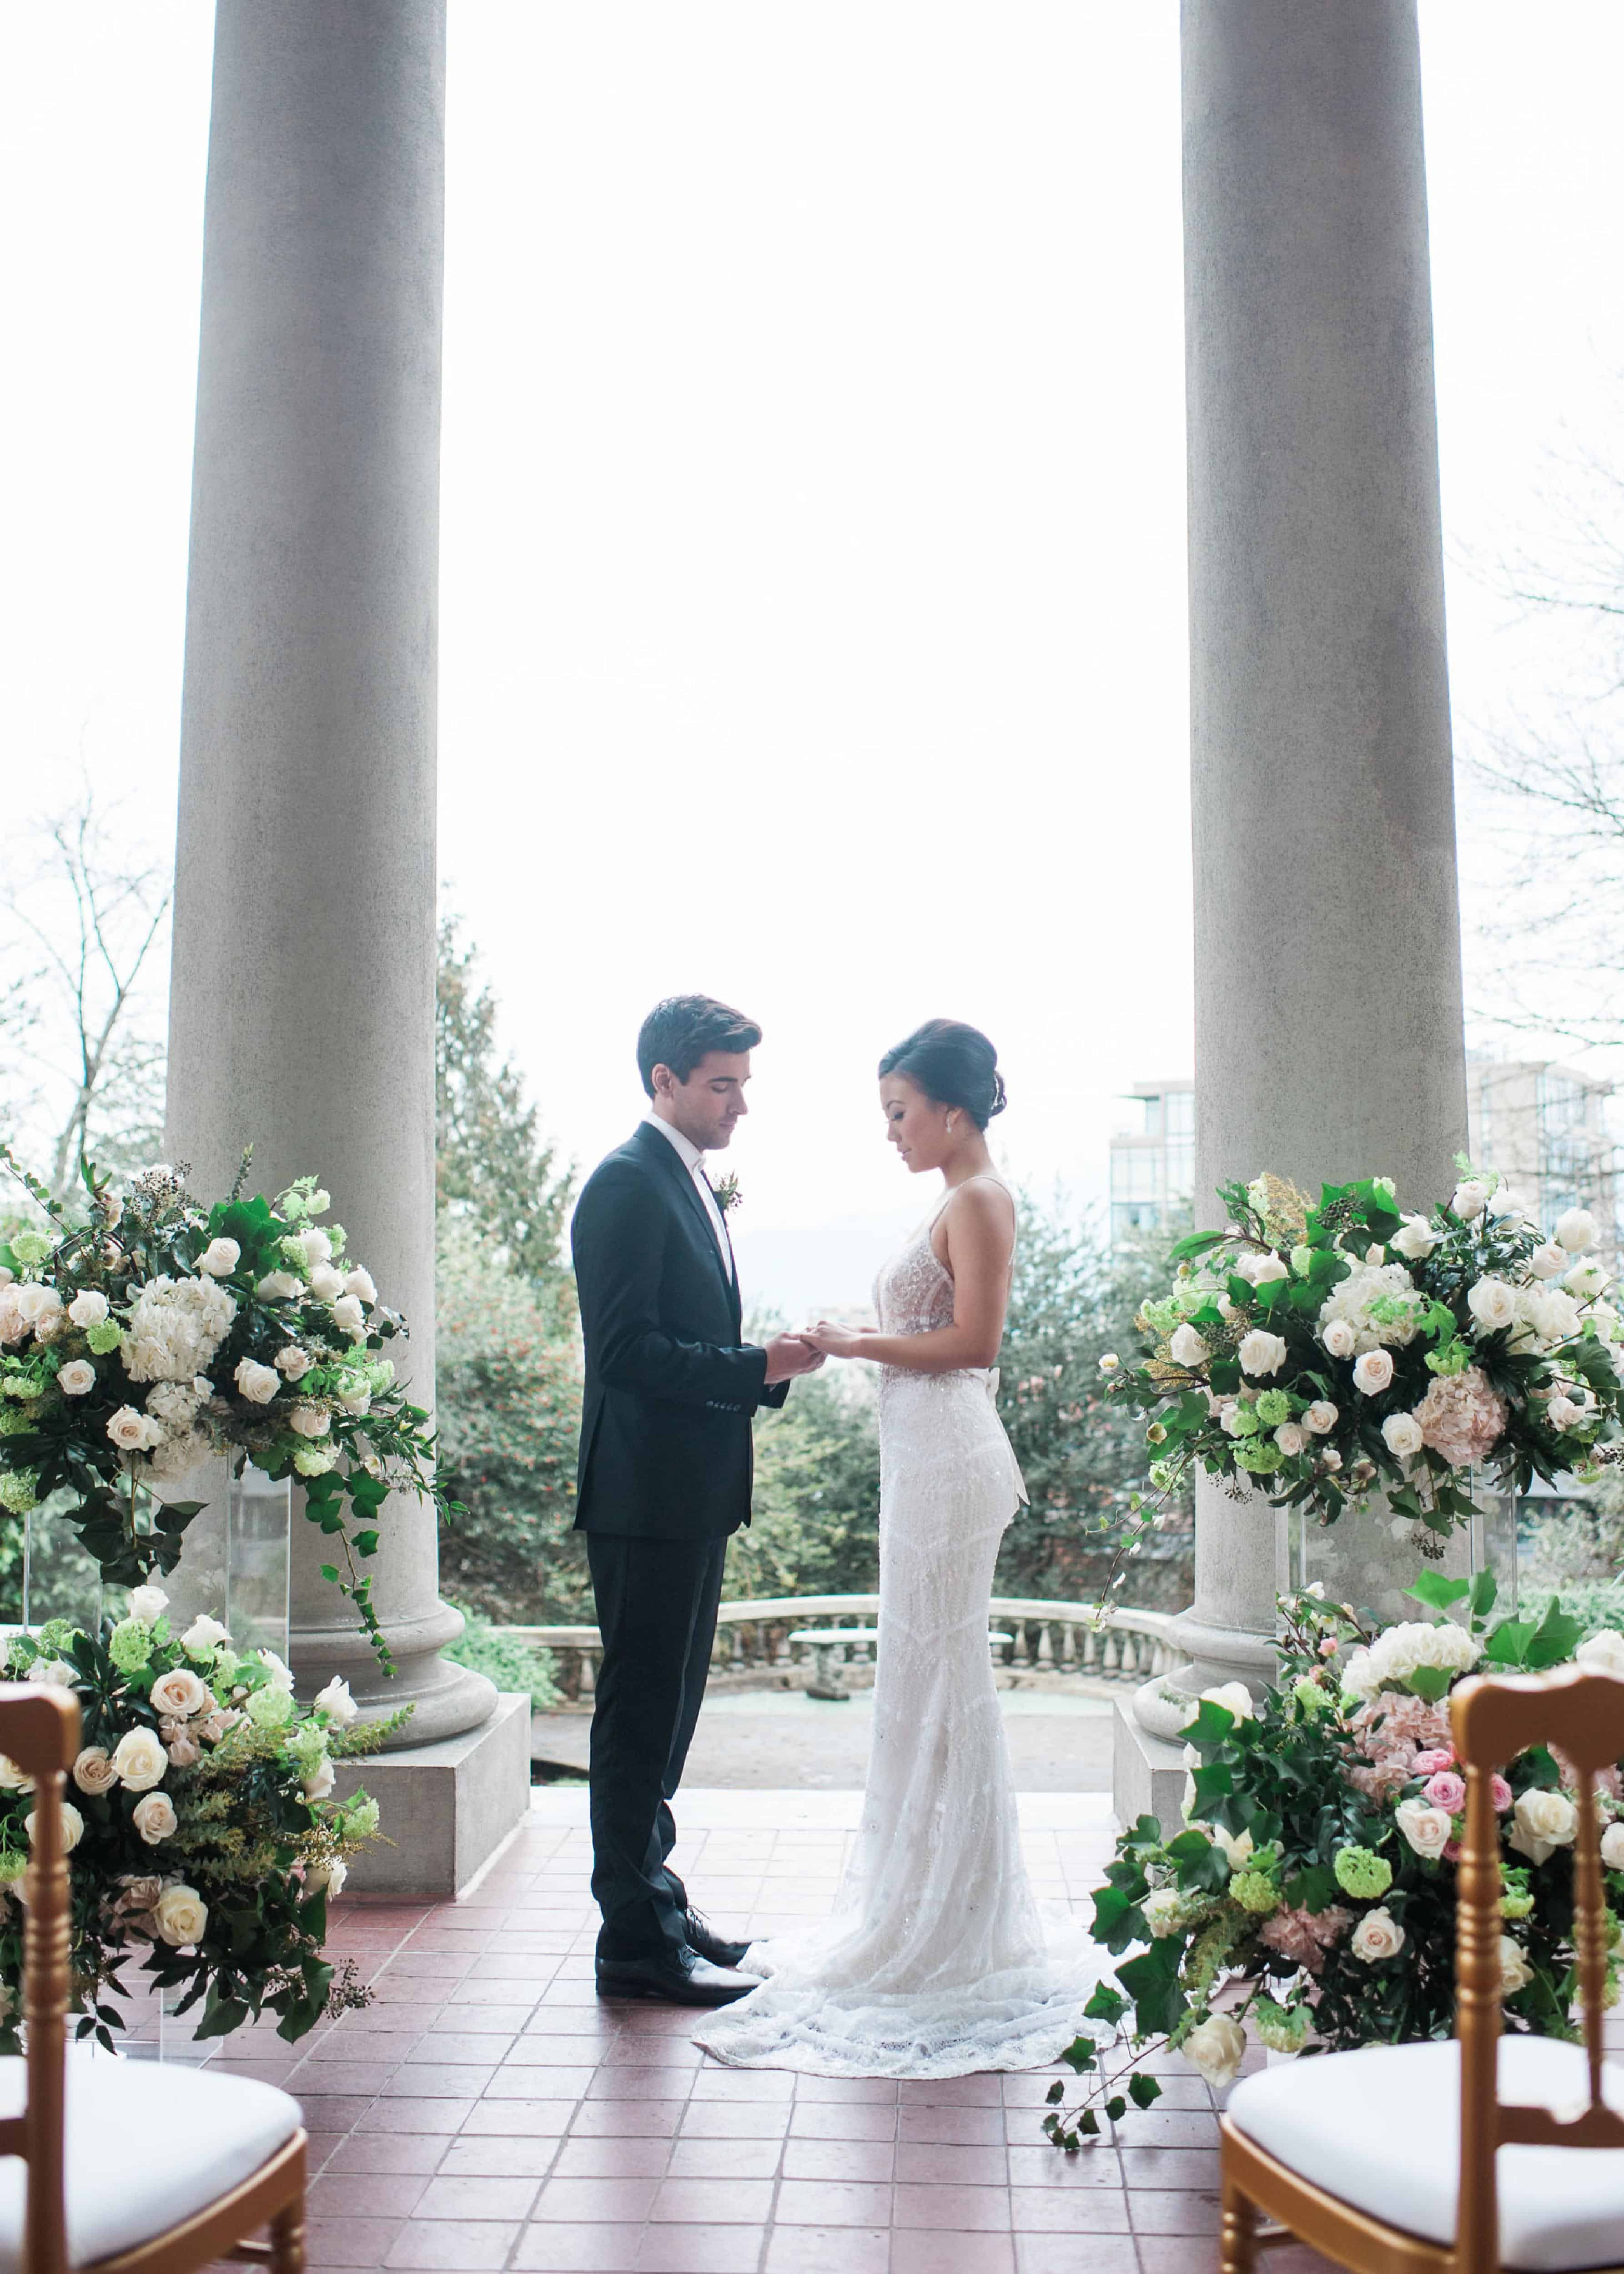 A Luxurious Intimate Wedding at Hycroft Manor - Real Weddings